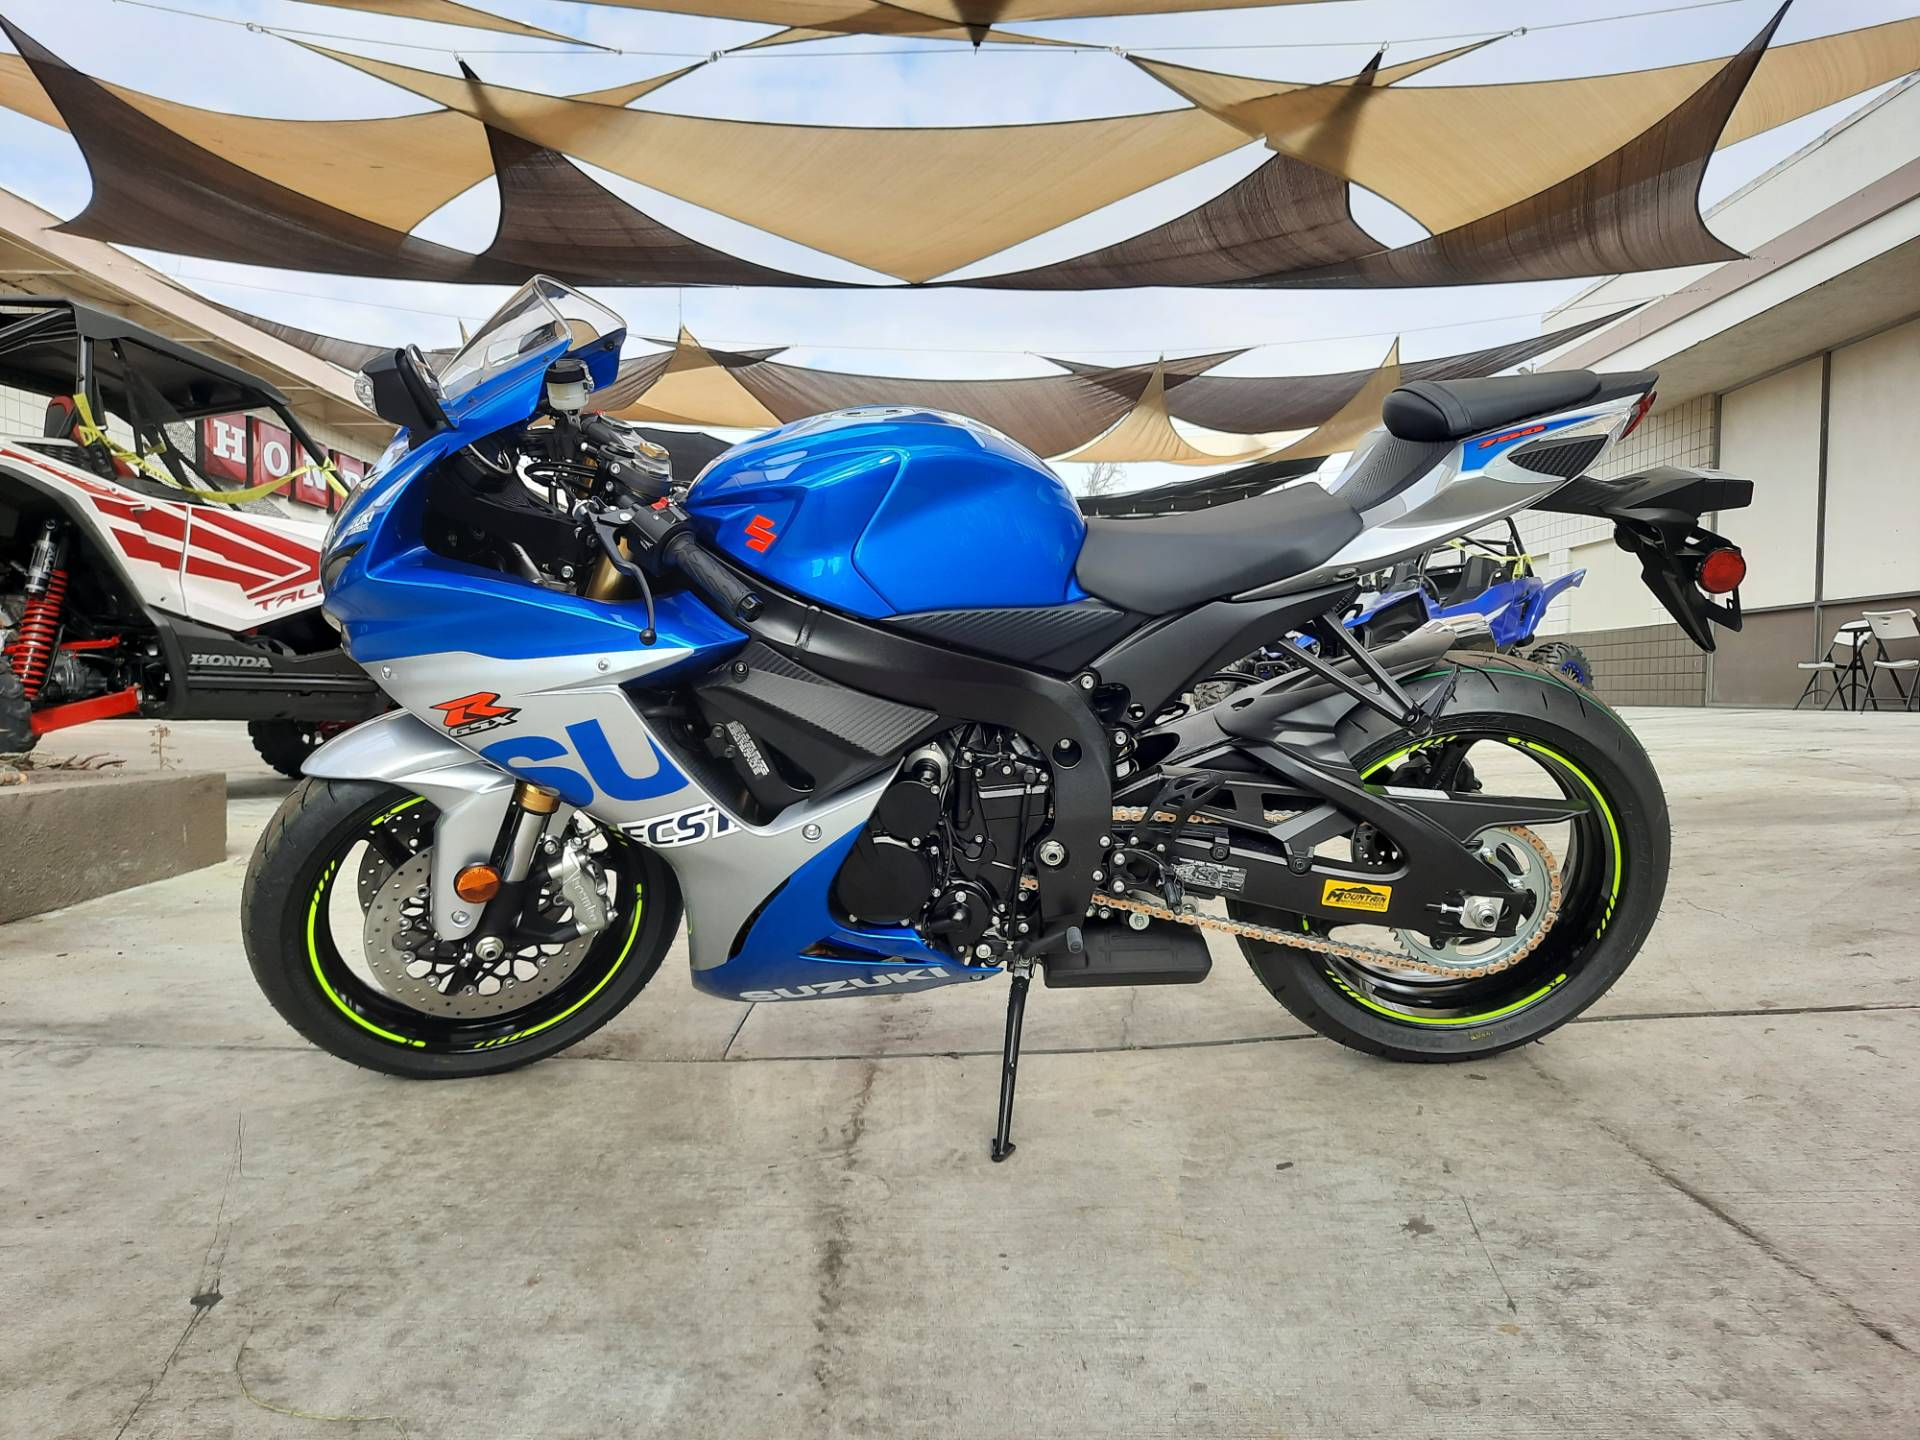 2021 Suzuki GSX-R750 100th Anniversary Edition in Ontario, California - Photo 2